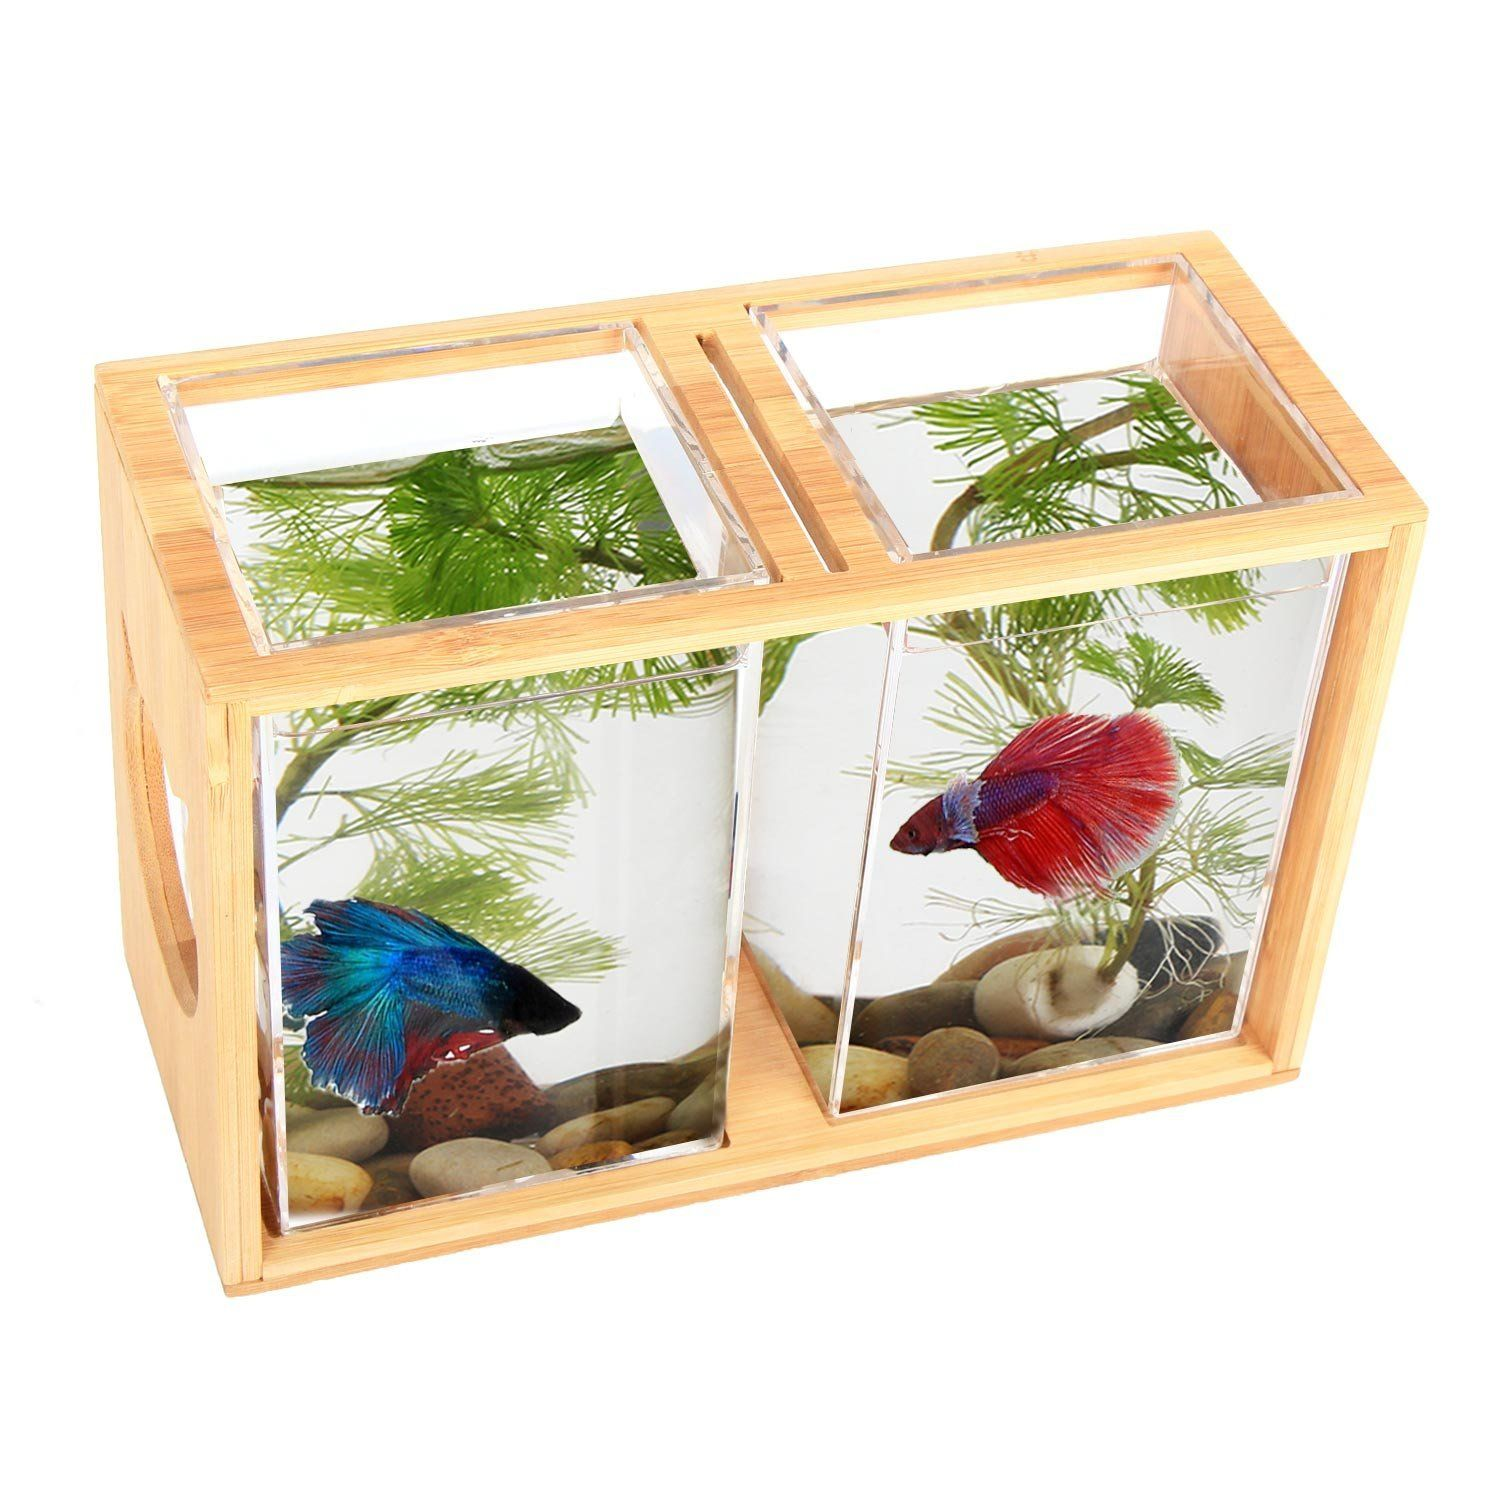 Fish bowls bamboosegarty unique cool design small square glass fish bowls bamboosegarty unique cool design small square glass vase creative aquarium kit with reviewsmspy